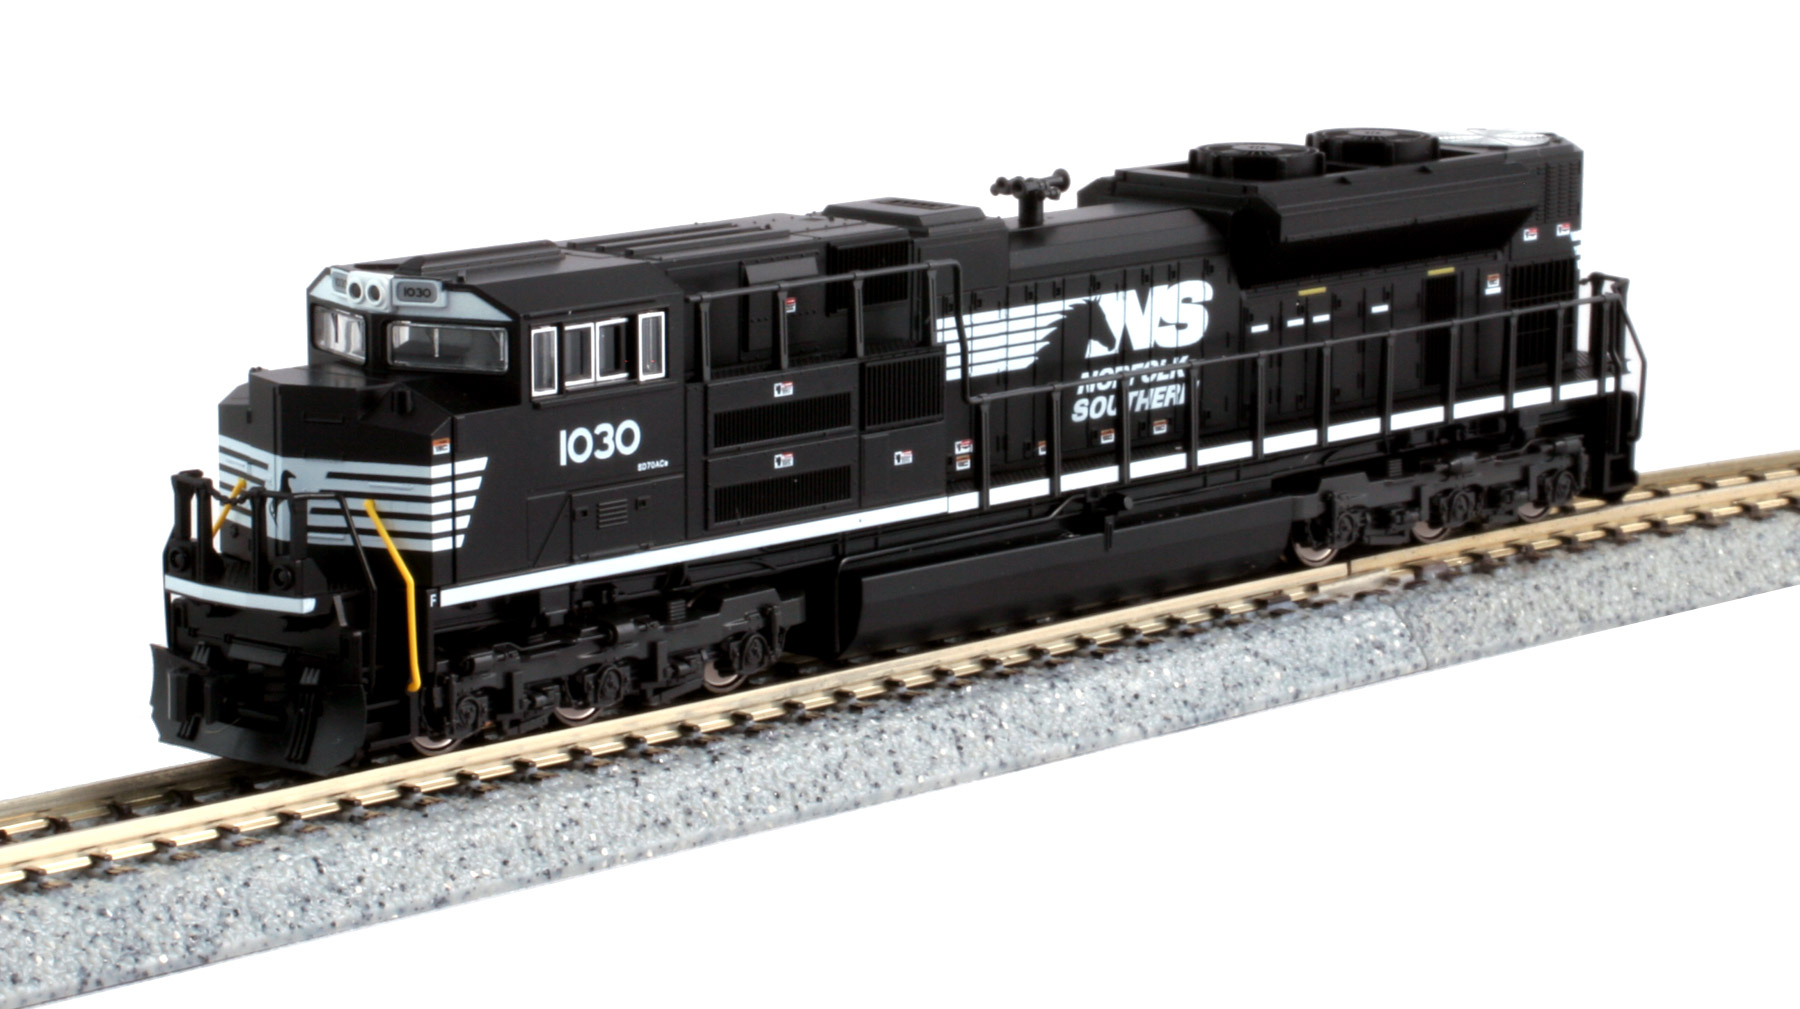 Kato N 176-8514 DCC Ready EMD SD70ACe Diesel Locomotive Norfolk Southern NS #1030